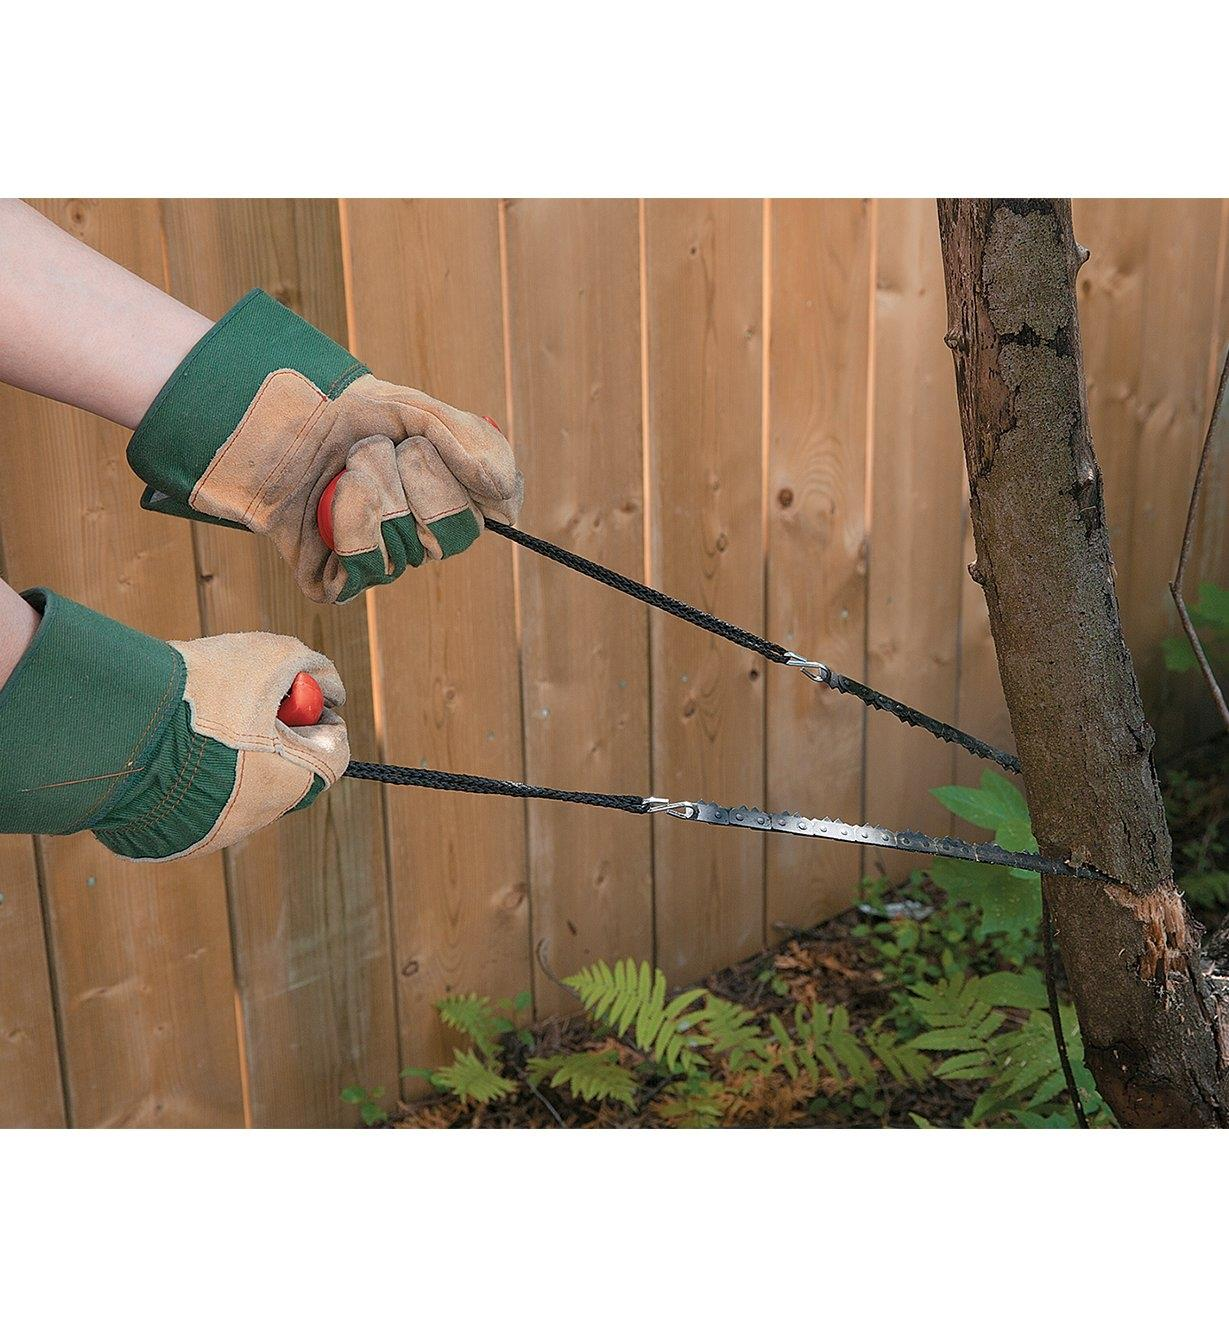 Using a Pocket Chain Saw to cut through a small tree trunk